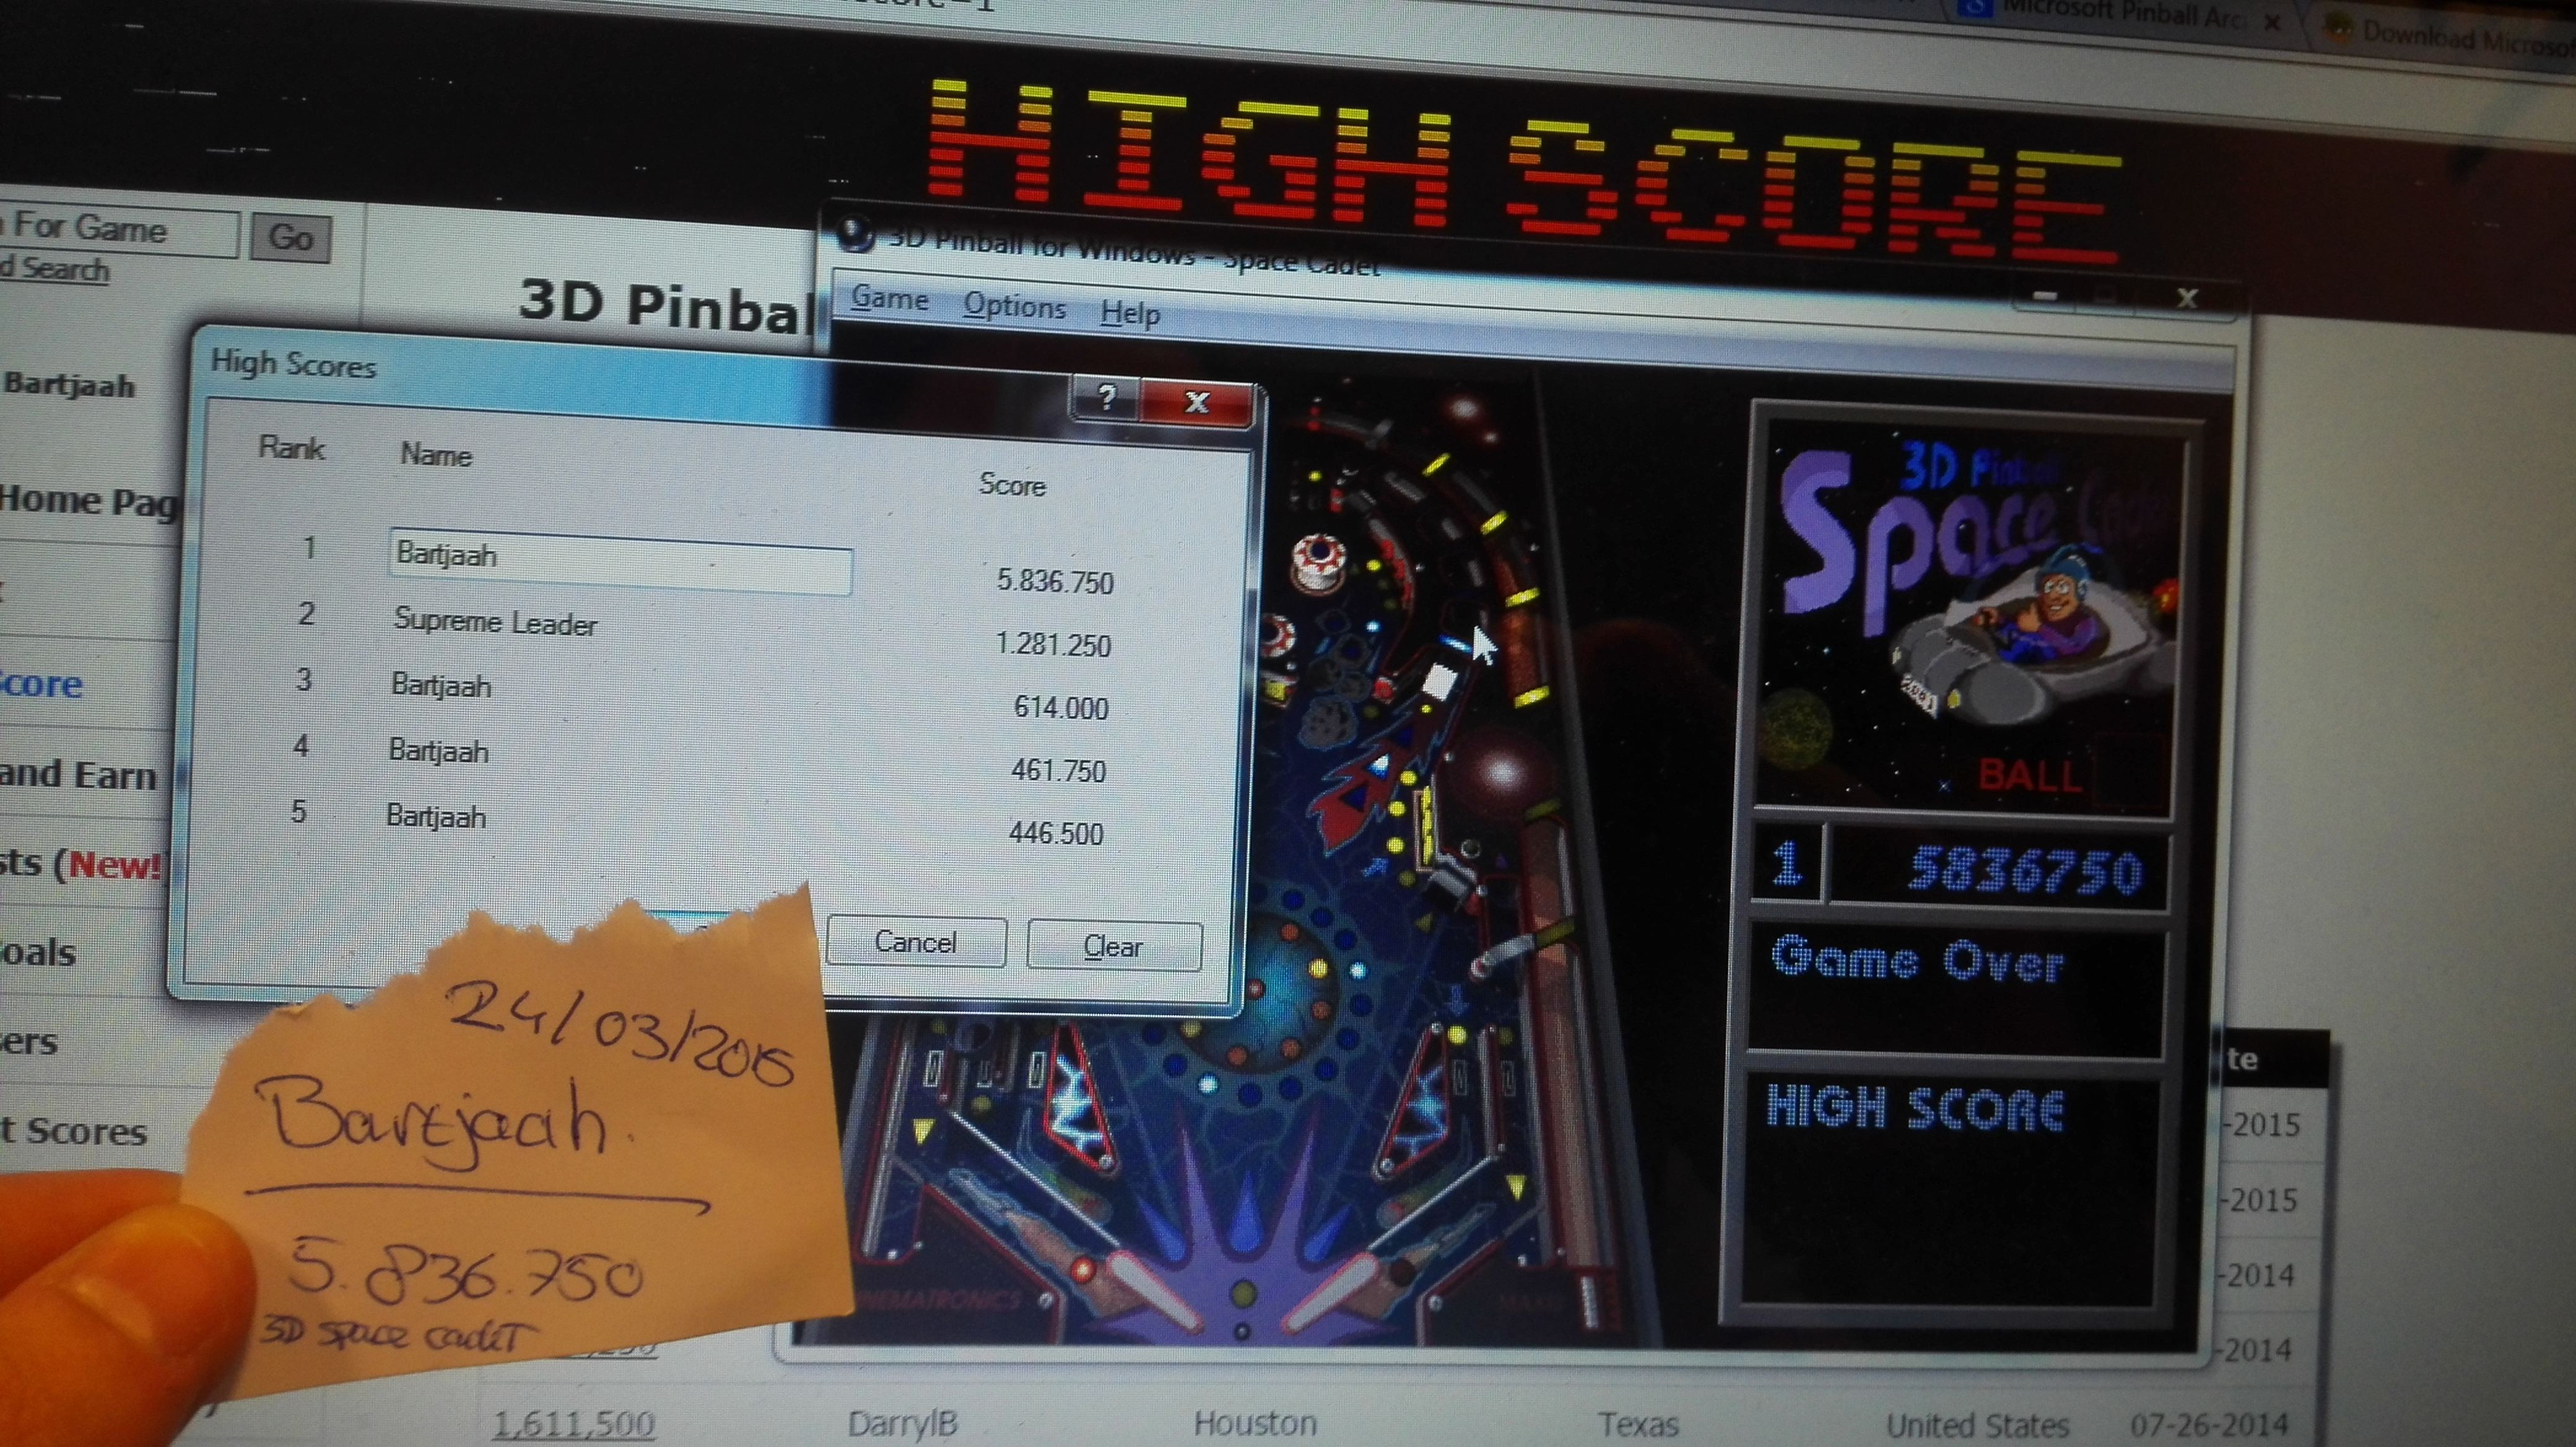 3D Pinball: Space Cadet 5,836,750 points